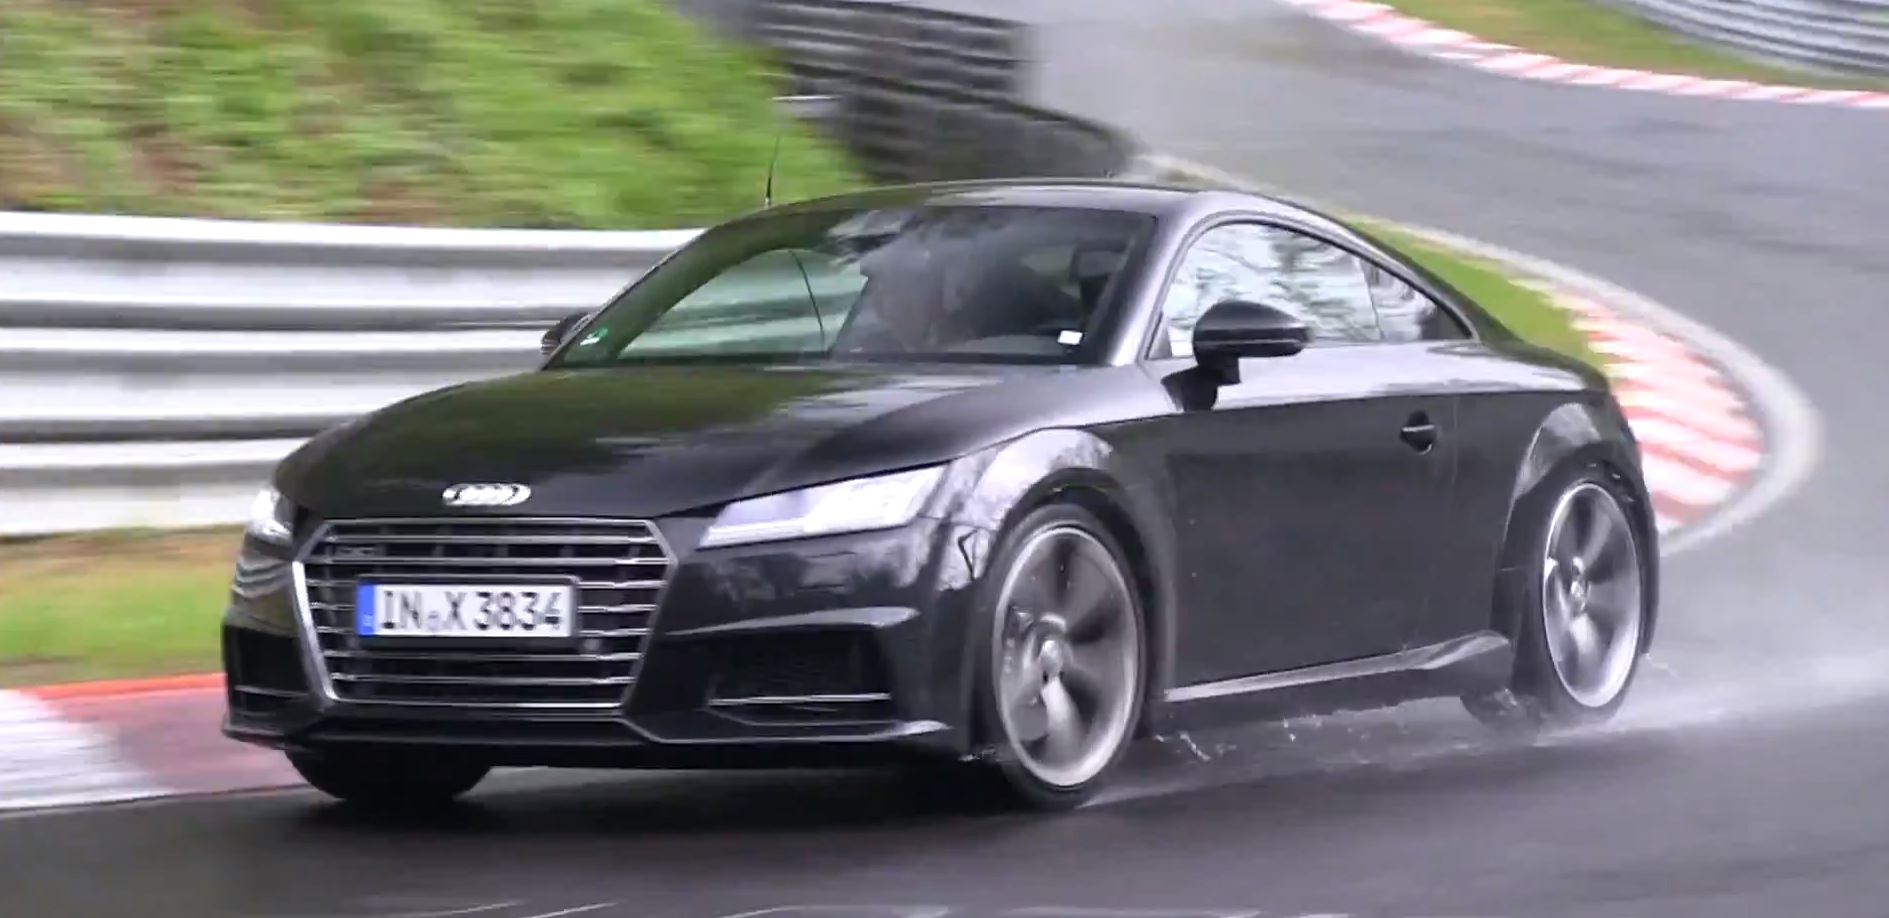 2015 audi tts coupe spied testing on extremely wet nurburgring autoevolution. Black Bedroom Furniture Sets. Home Design Ideas